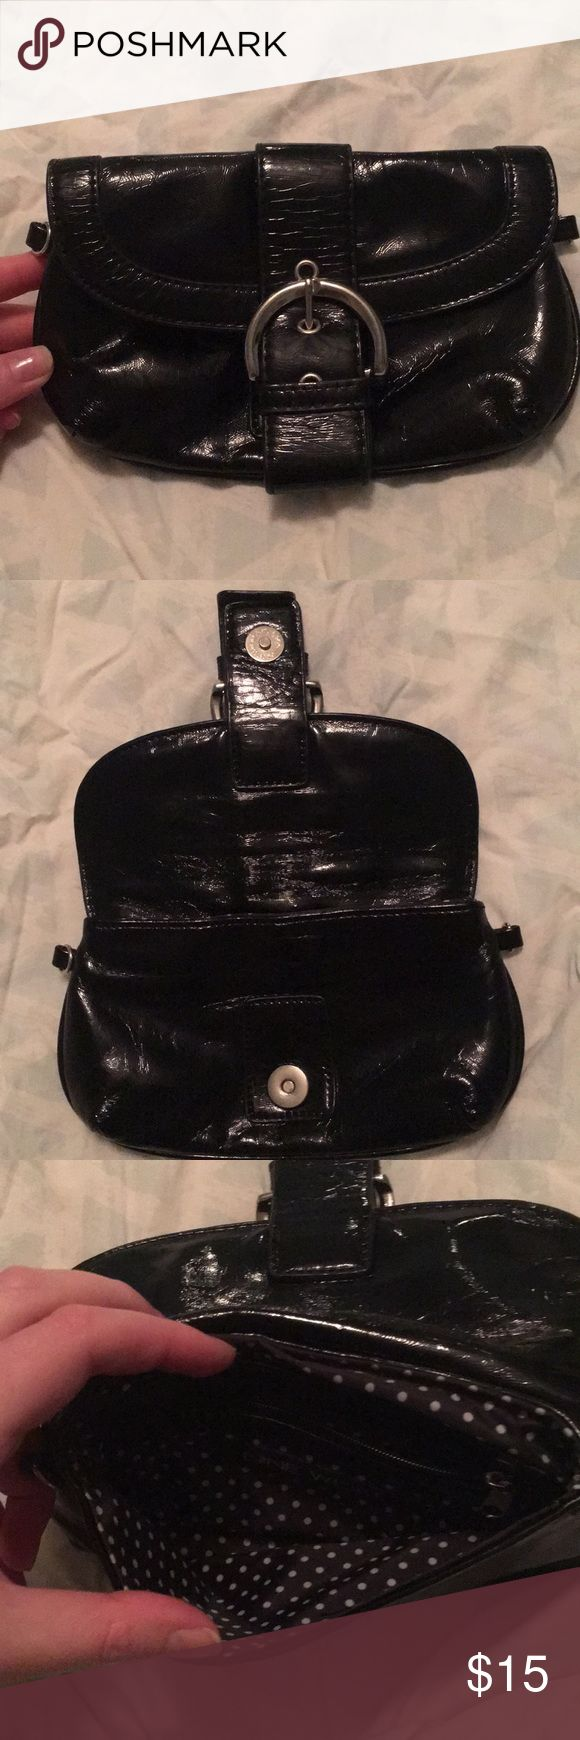 Black Patent Nine West Clutch Crackled black patent leather with black and white polka dot cloth interior. No visible marks to interior, some creasing of exterior due to storage. Has hooks for strap, not included. Magnetic closure. Nine West Bags Clutches & Wristlets